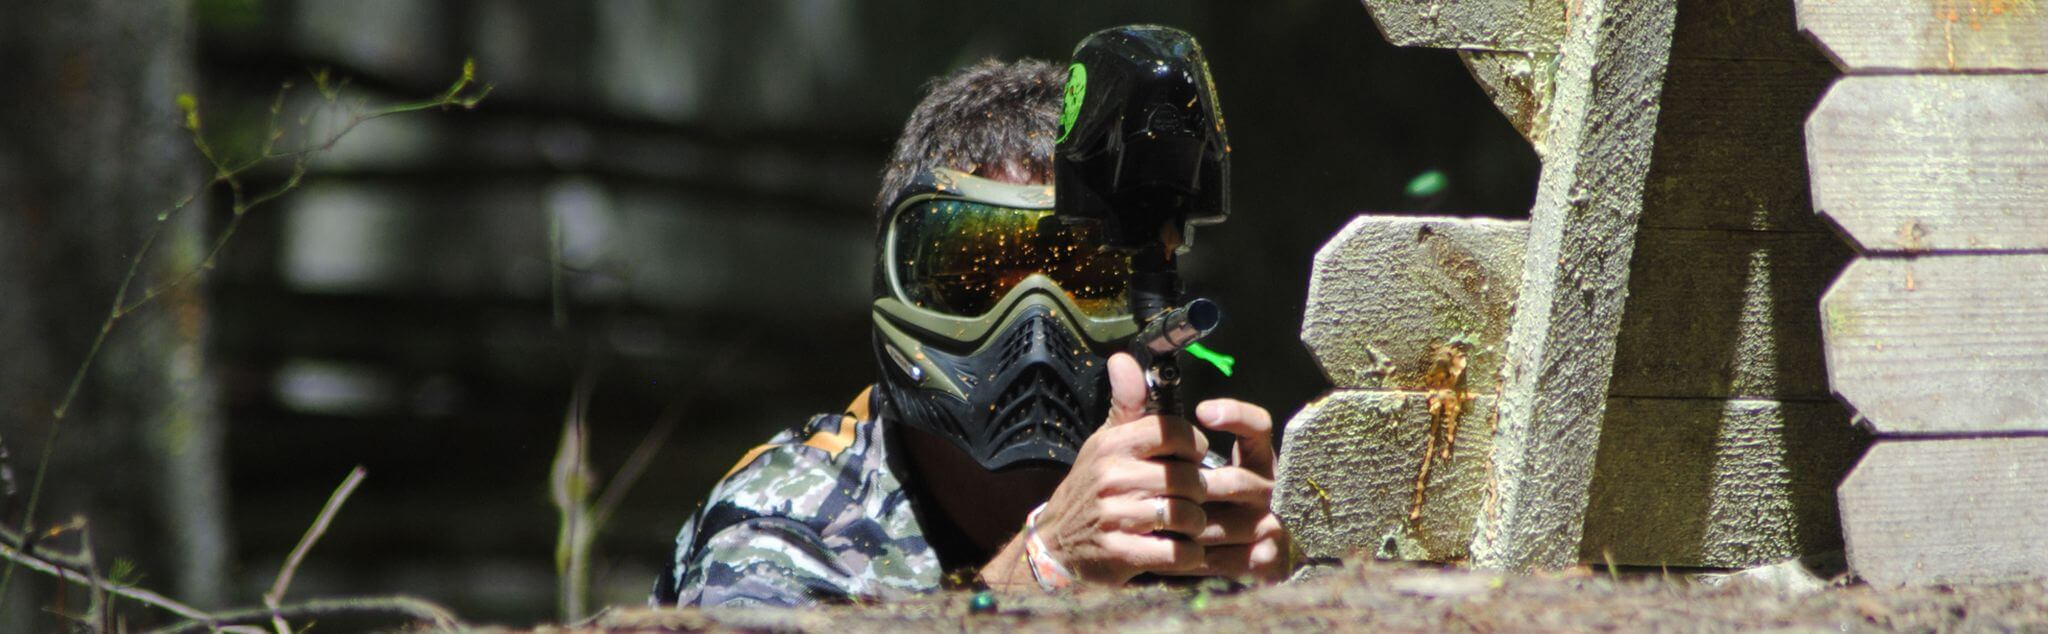 Paintball en Vega De Liebana